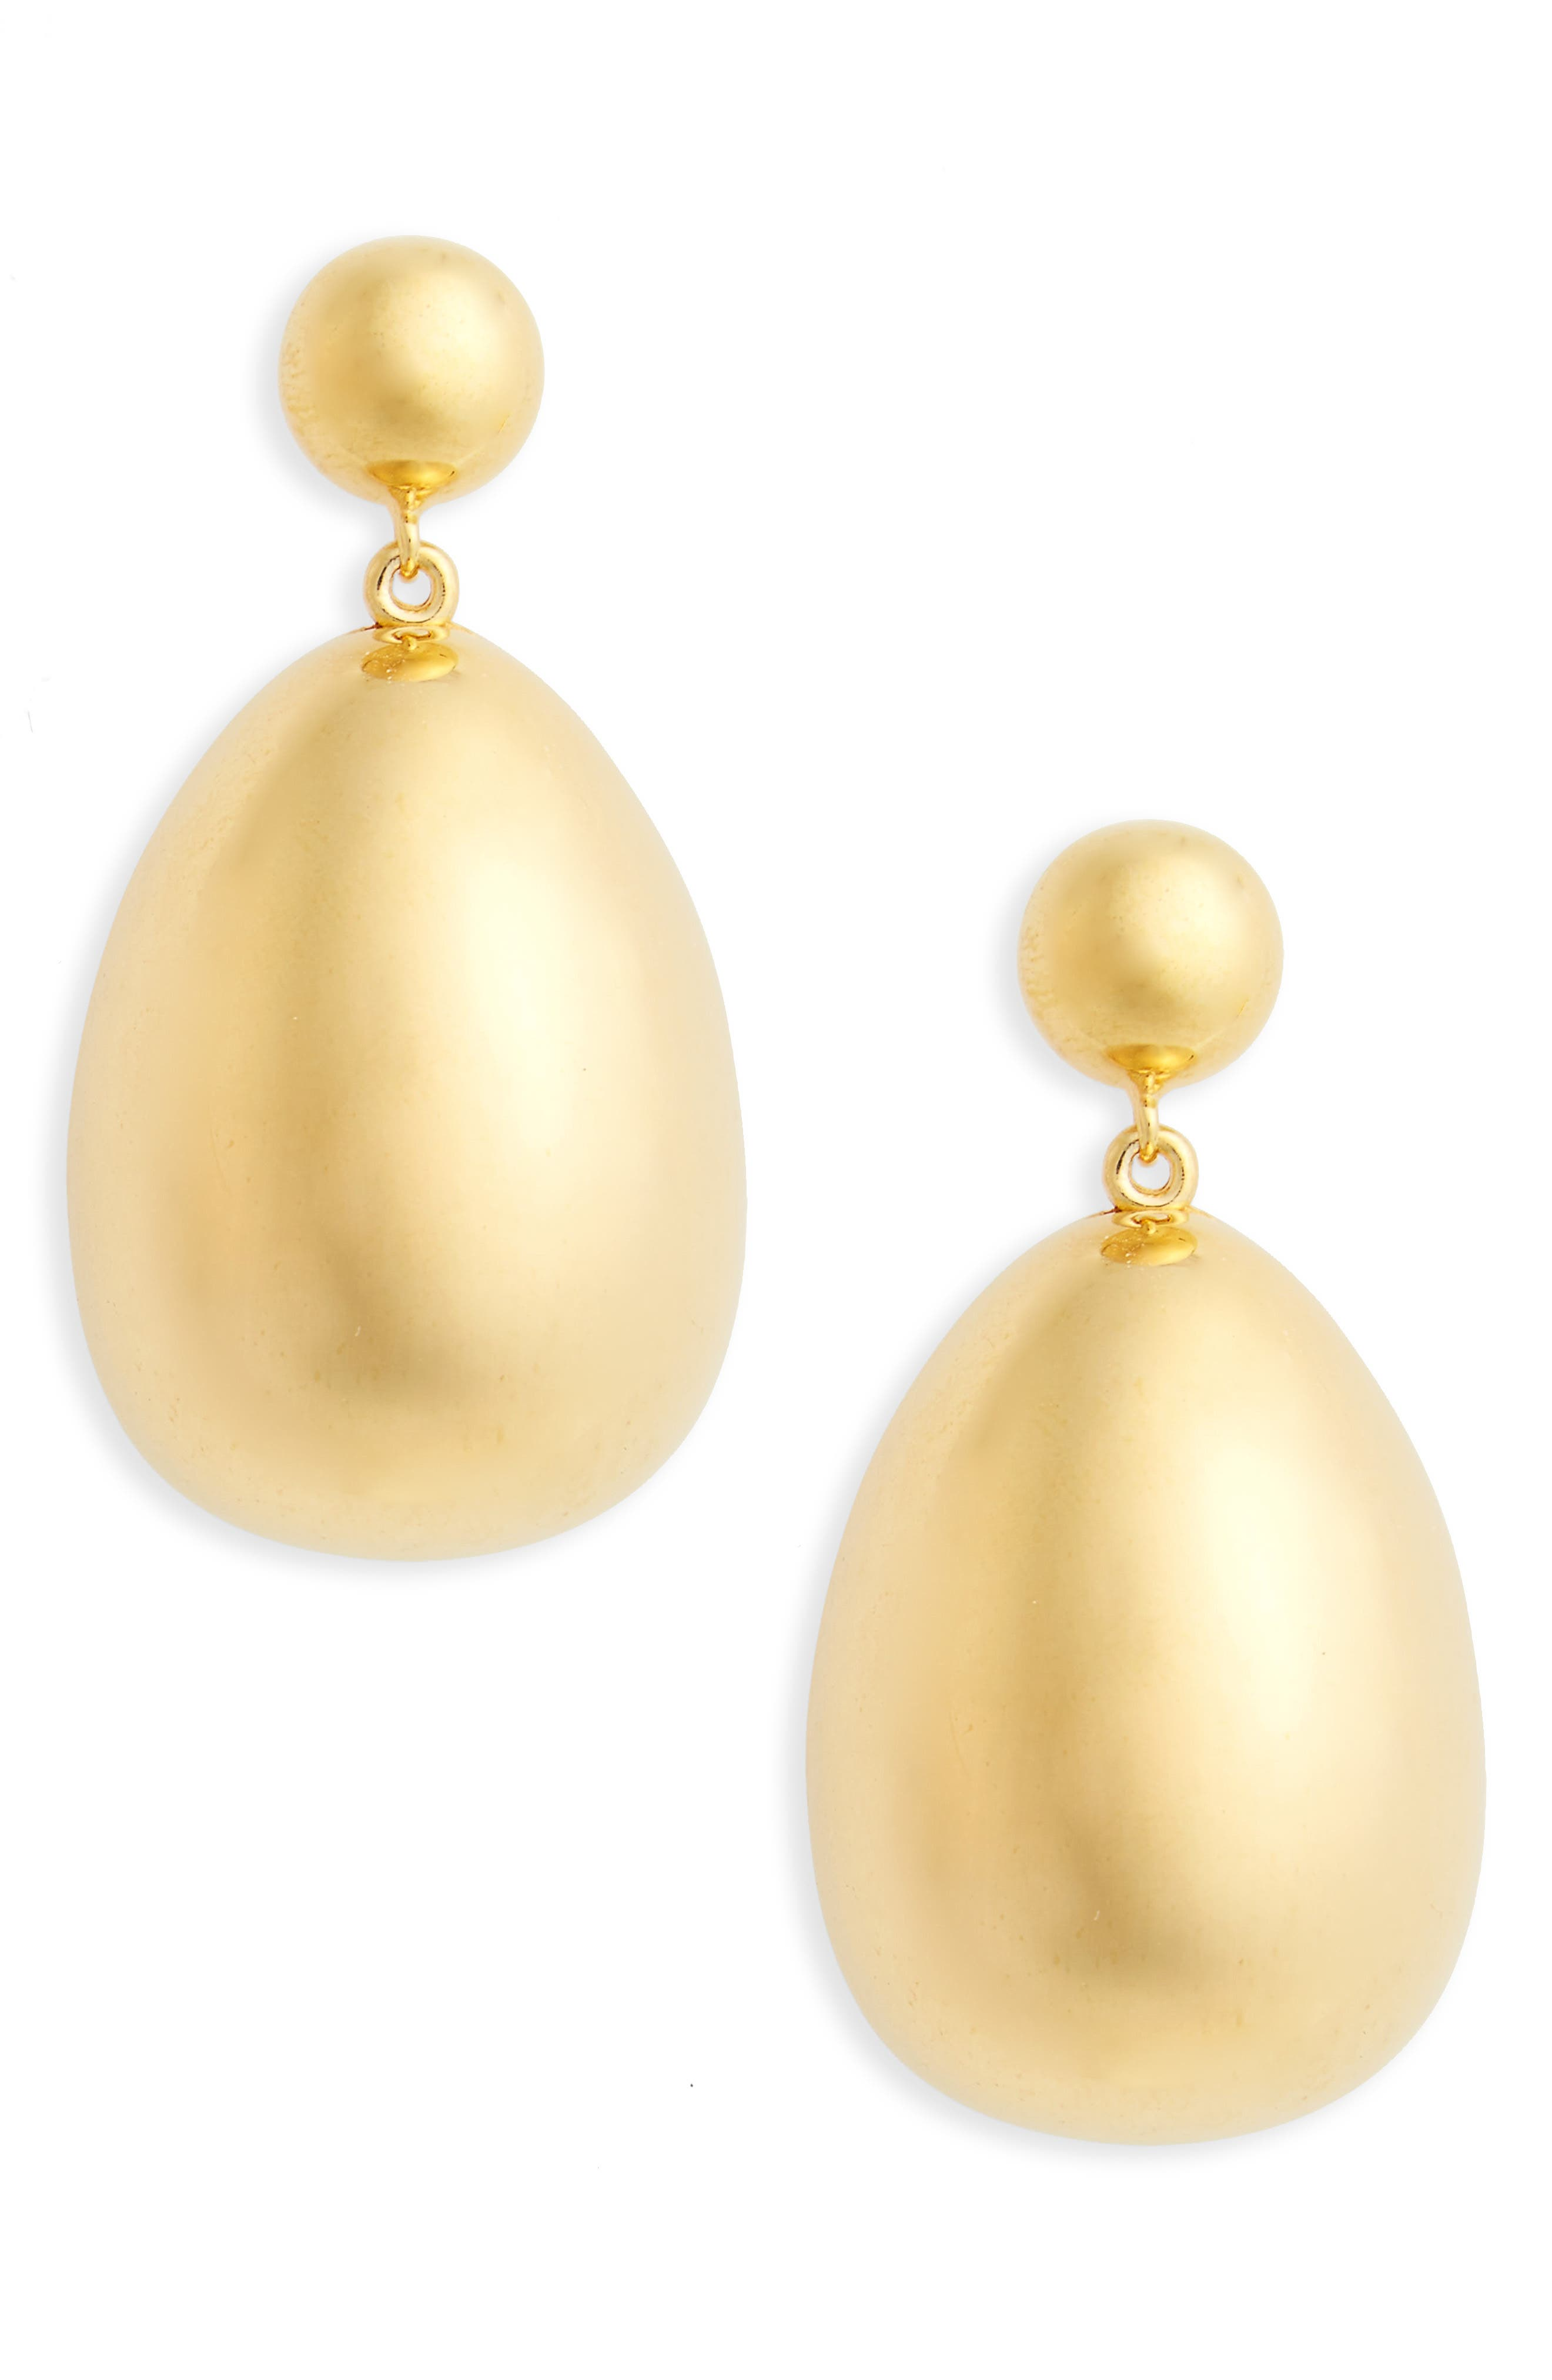 Vermeil Egg Drop Earrings,                         Main,                         color, VERMEILL